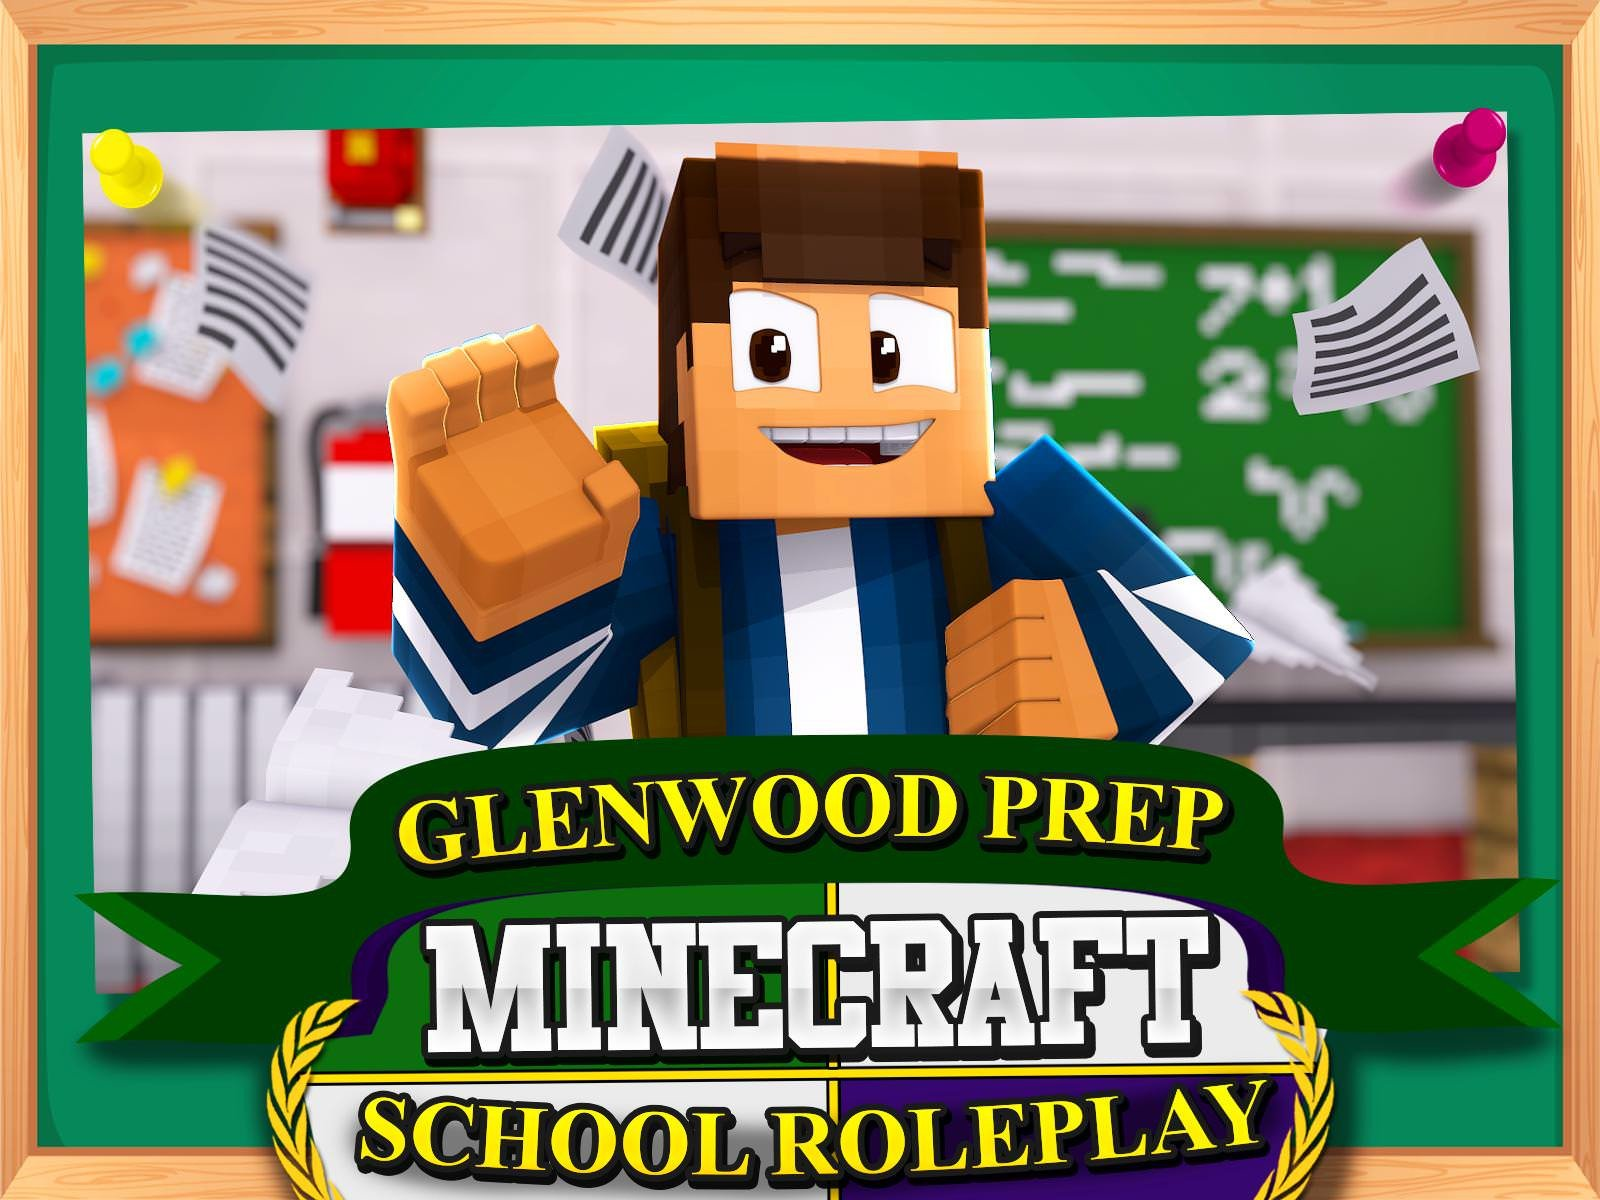 Clip: Glenwood Prep: Minecraft School Roleplay - Season 1